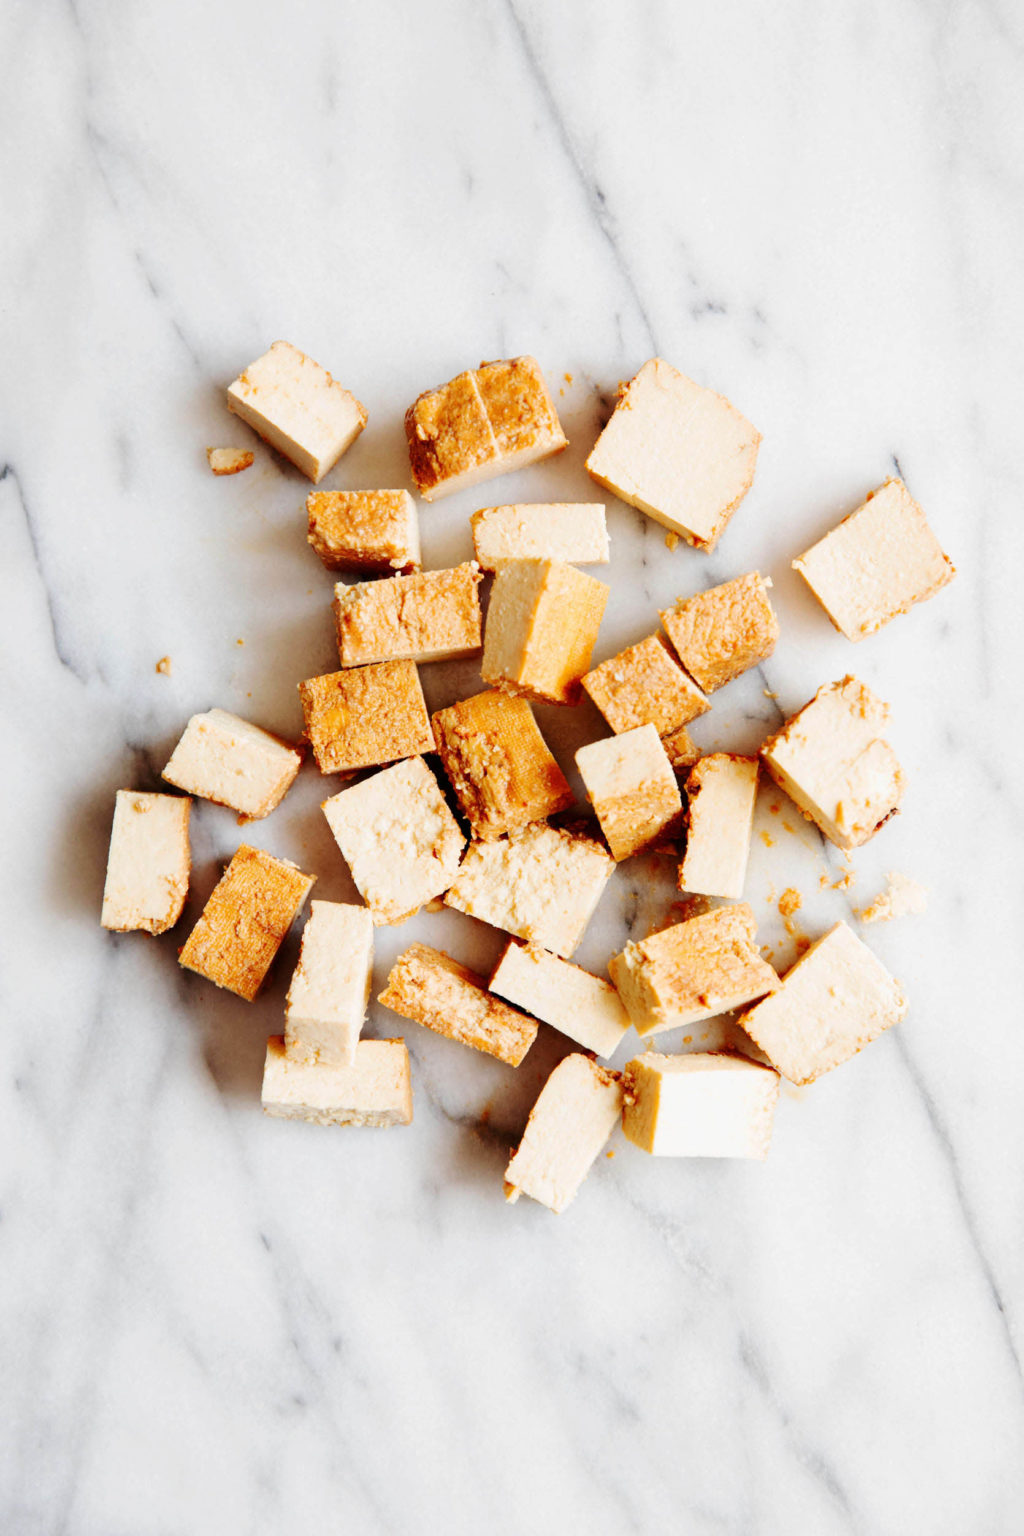 Cubed tofu rests on a white marble surface.